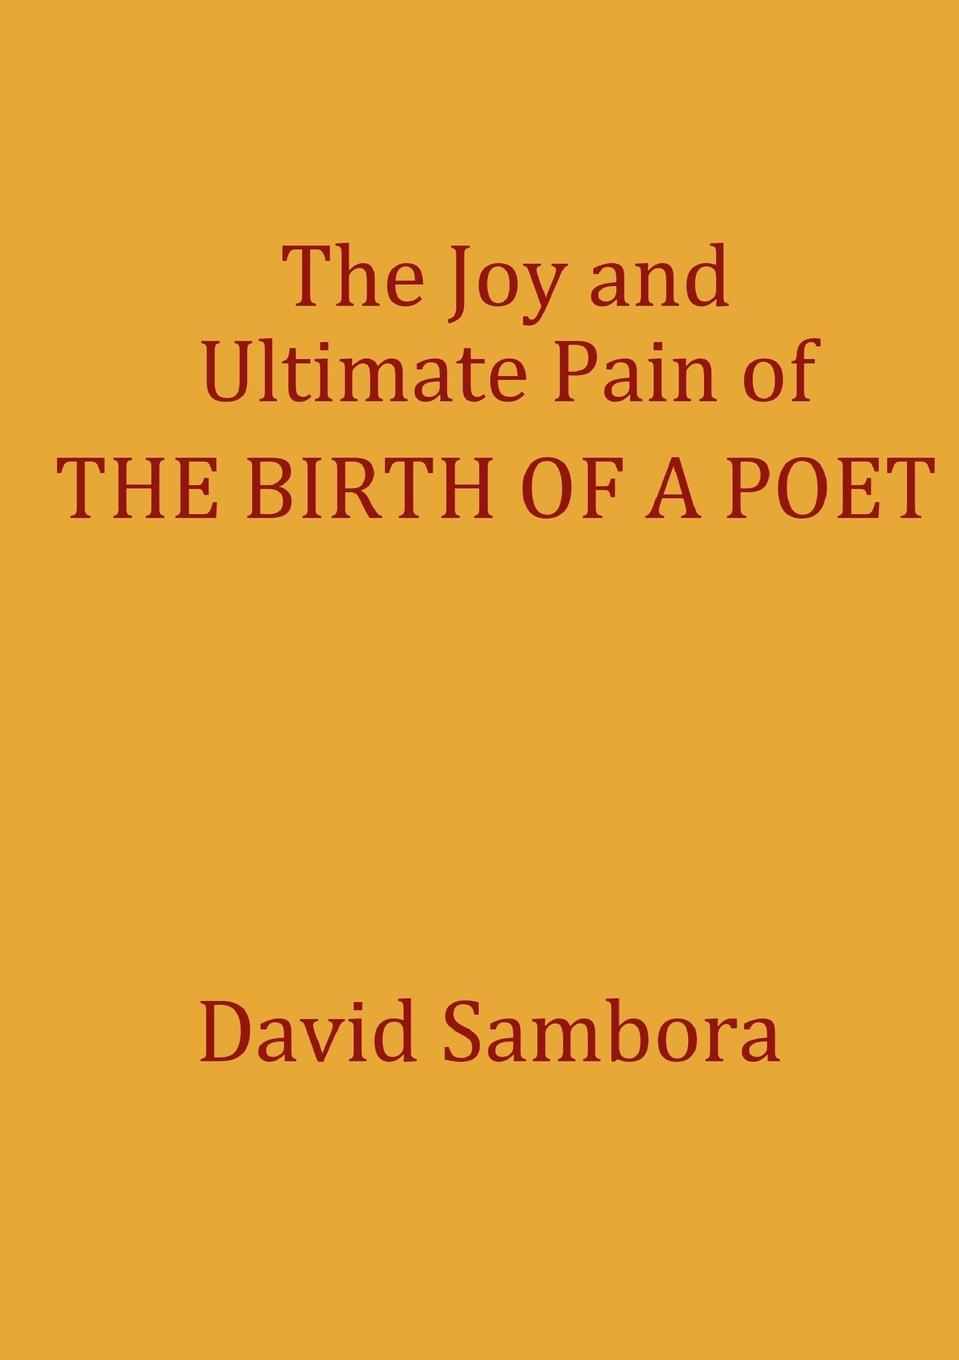 David Sambora The Joy and Ultimate Pain of THE BIRTH OF A POET sarah godfrey life works when a story of piecing happiness together for a successful life